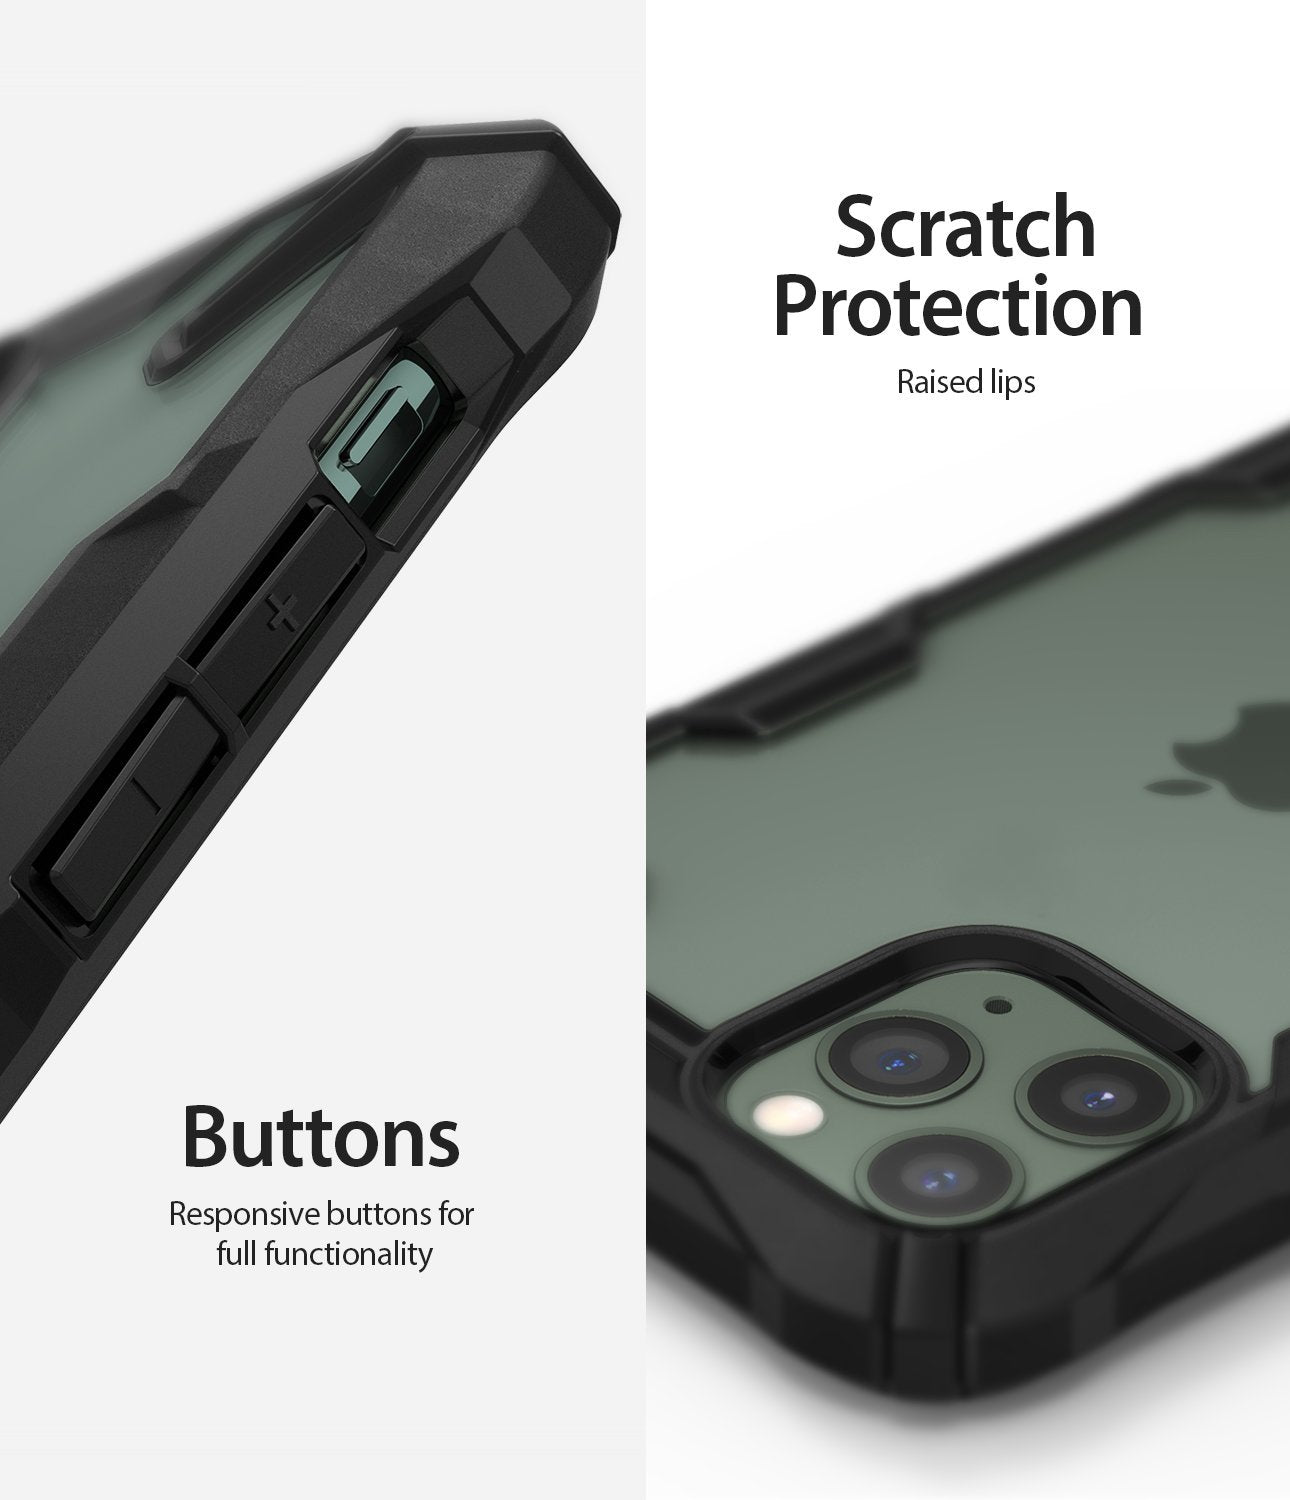 iPhone 11 Pro Case Fusion-X black scratch protection button